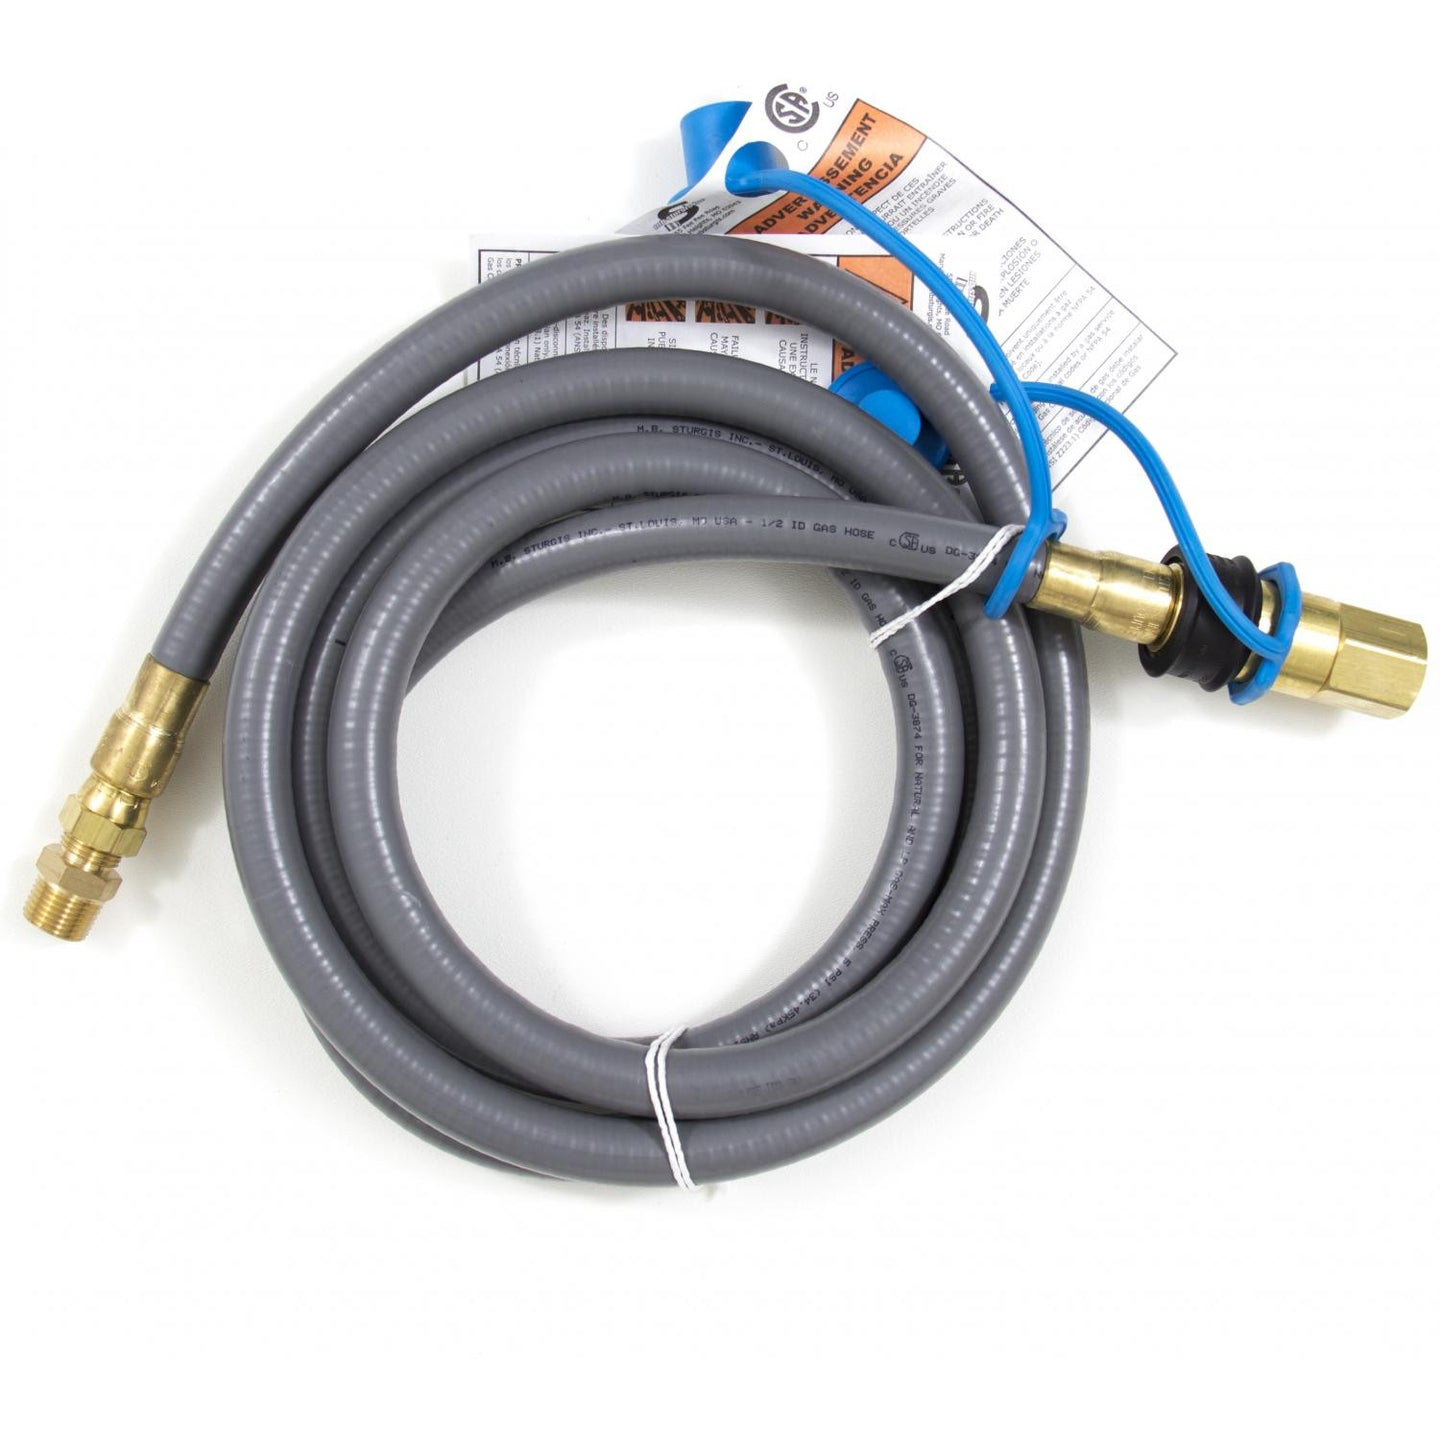 Blaze 10 Ft. Natural Gas Hose W/ Quick Disconnect